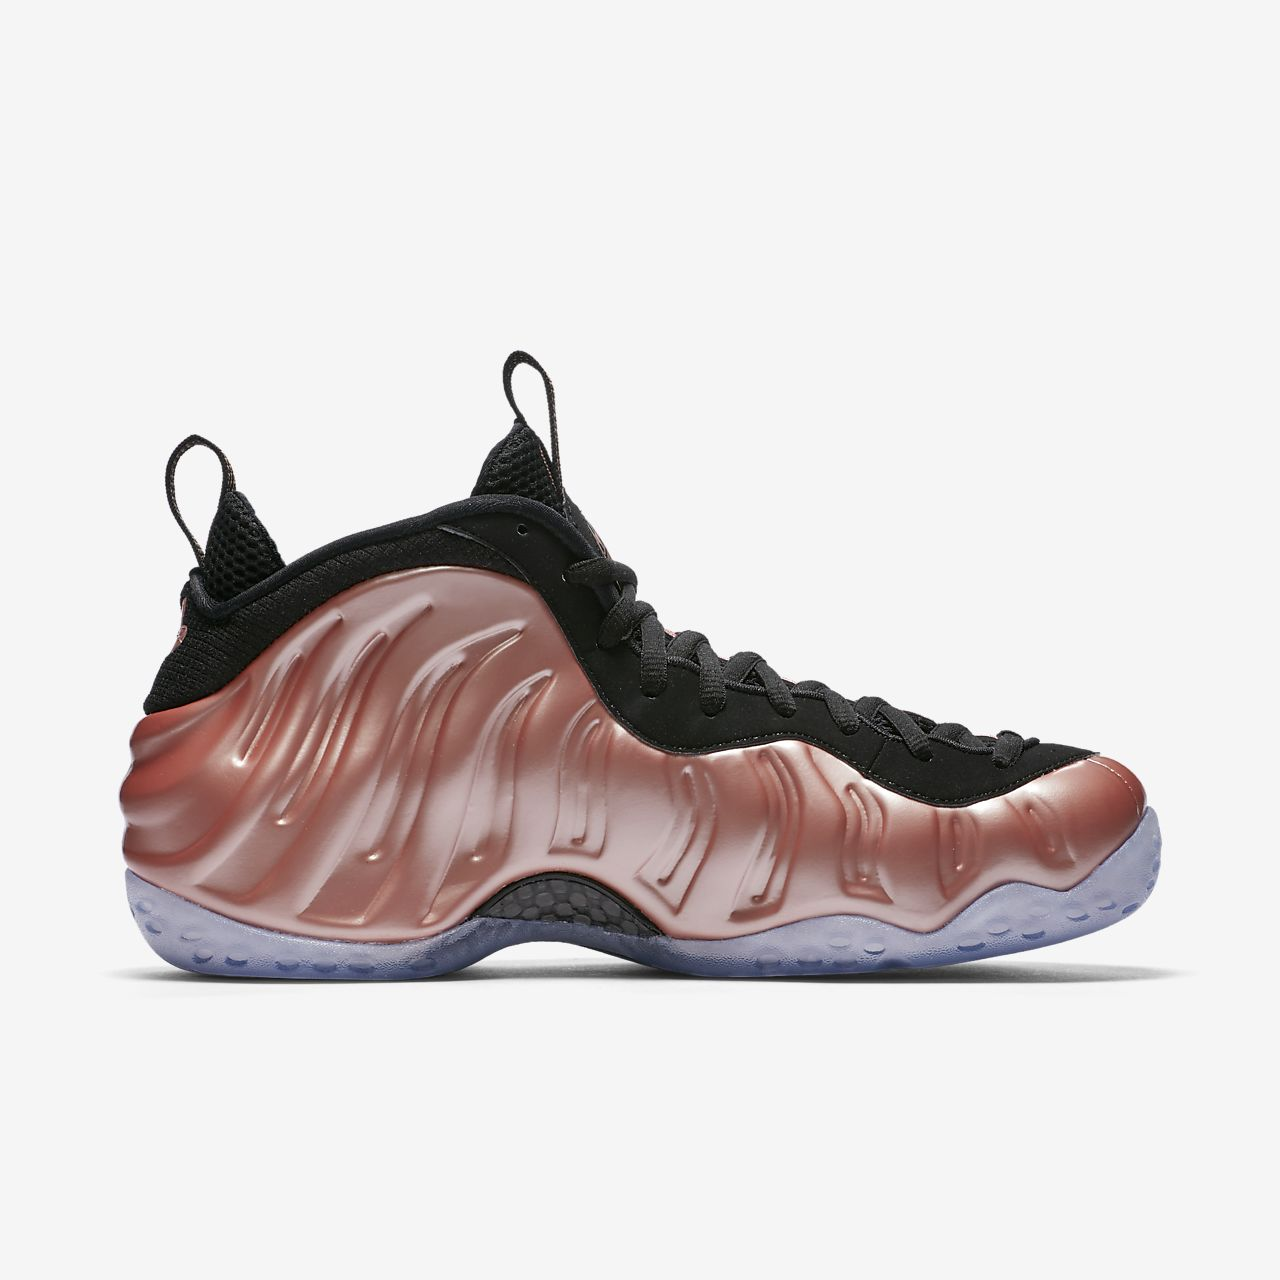 Nike Air Foamposite Niño